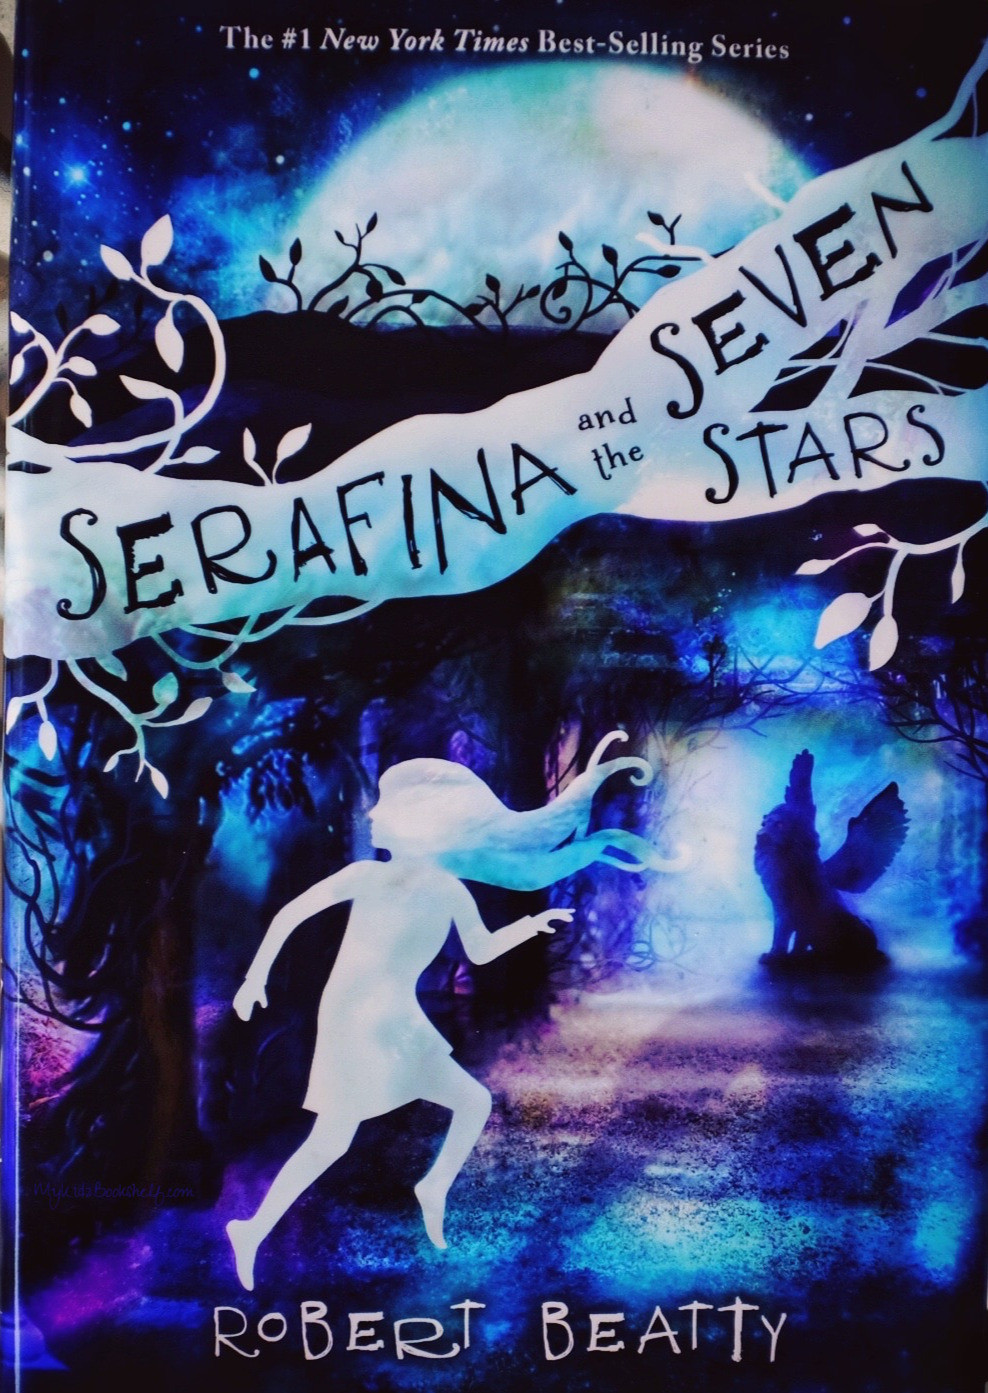 Serafina-and-the-Seven-Stars-by-Robert-Beatty-art-by-Alexander-Jansson-book-review